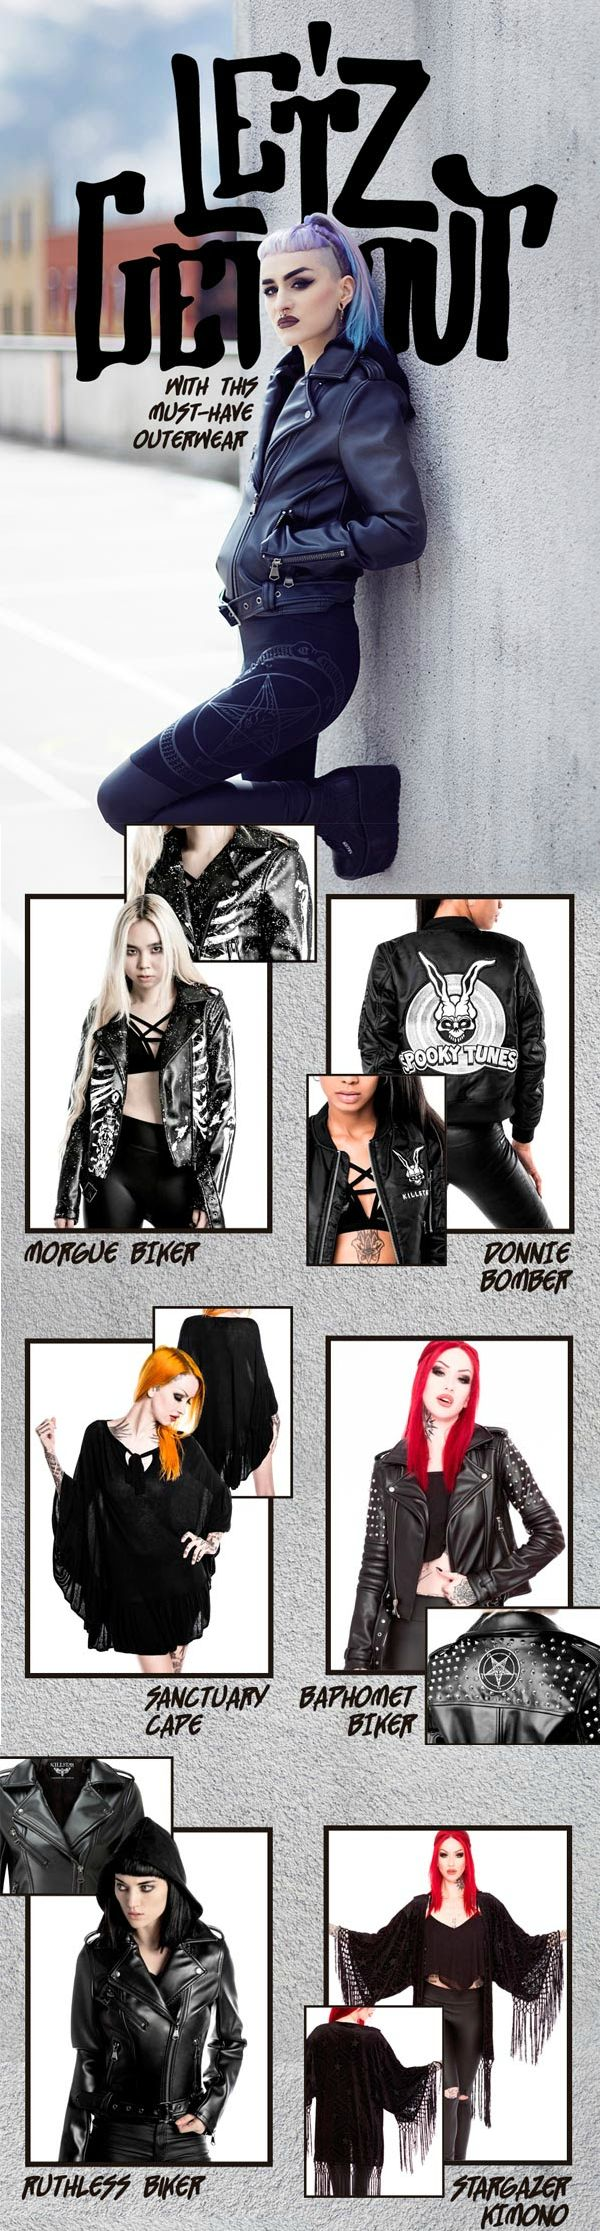 Let's get out! Our latest Outerwear pieces for women including vegan leather, bomber jackets & capes. Shop Now at KILLSTAR.com We Ship Worldwide!